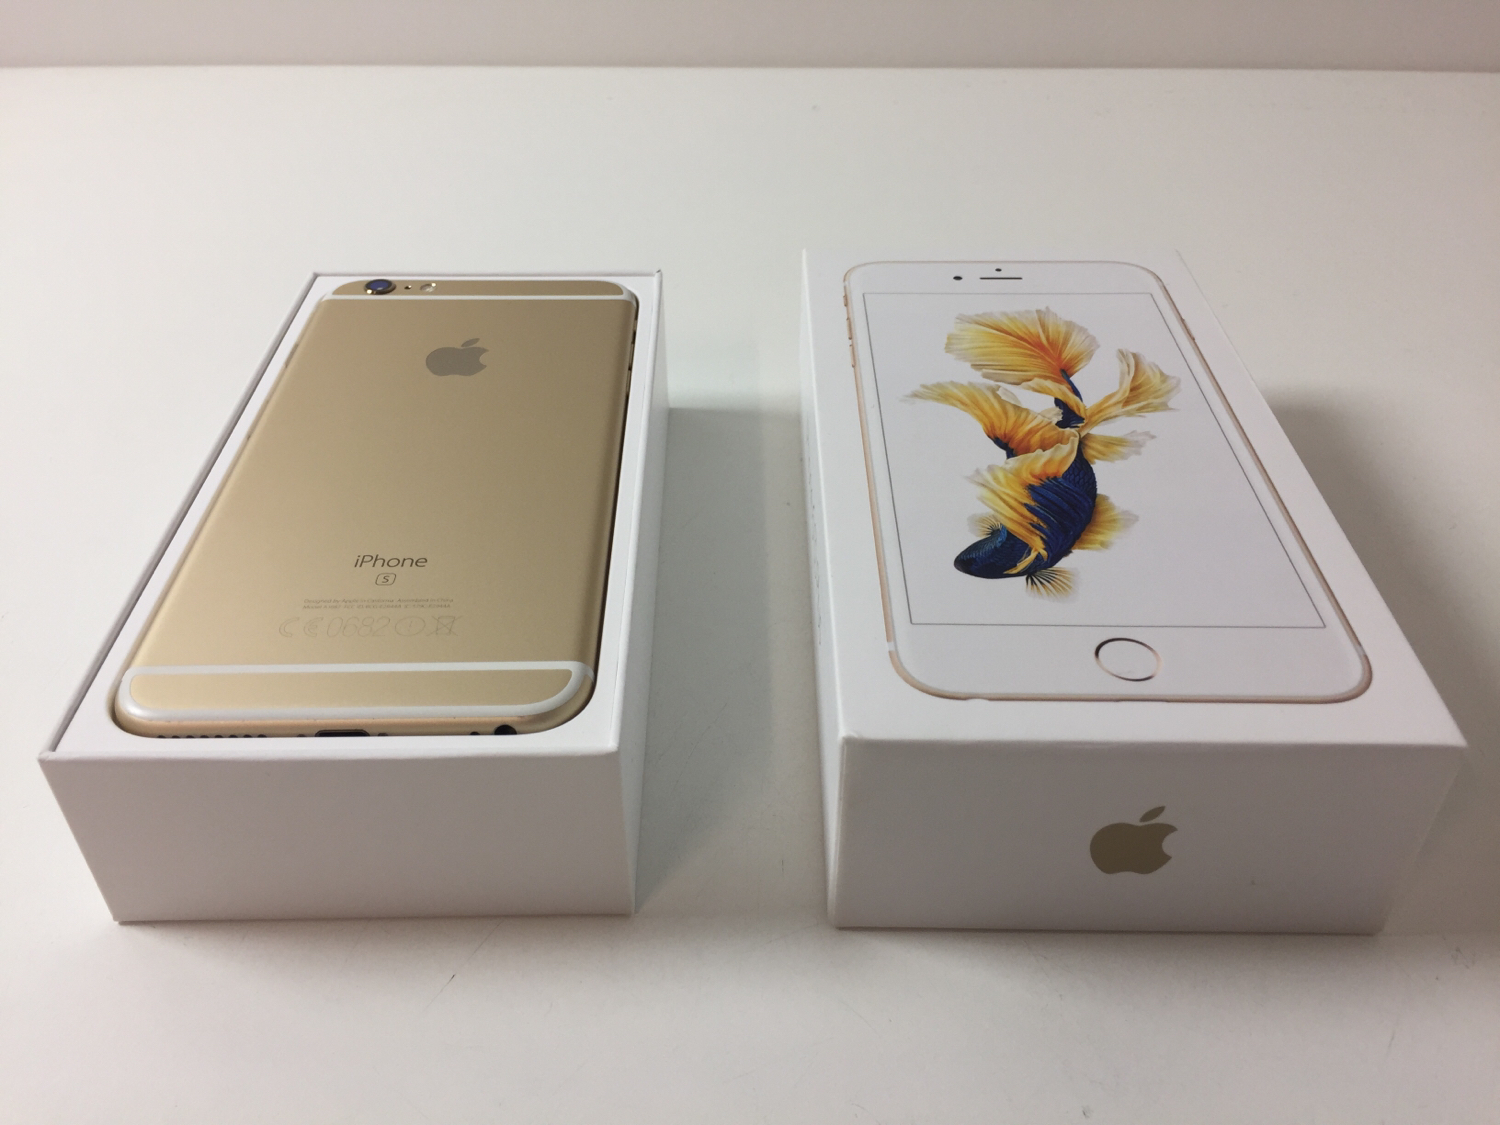 iPhone 6S Plus 16GB, 16 GB, Gold, Kuva 2